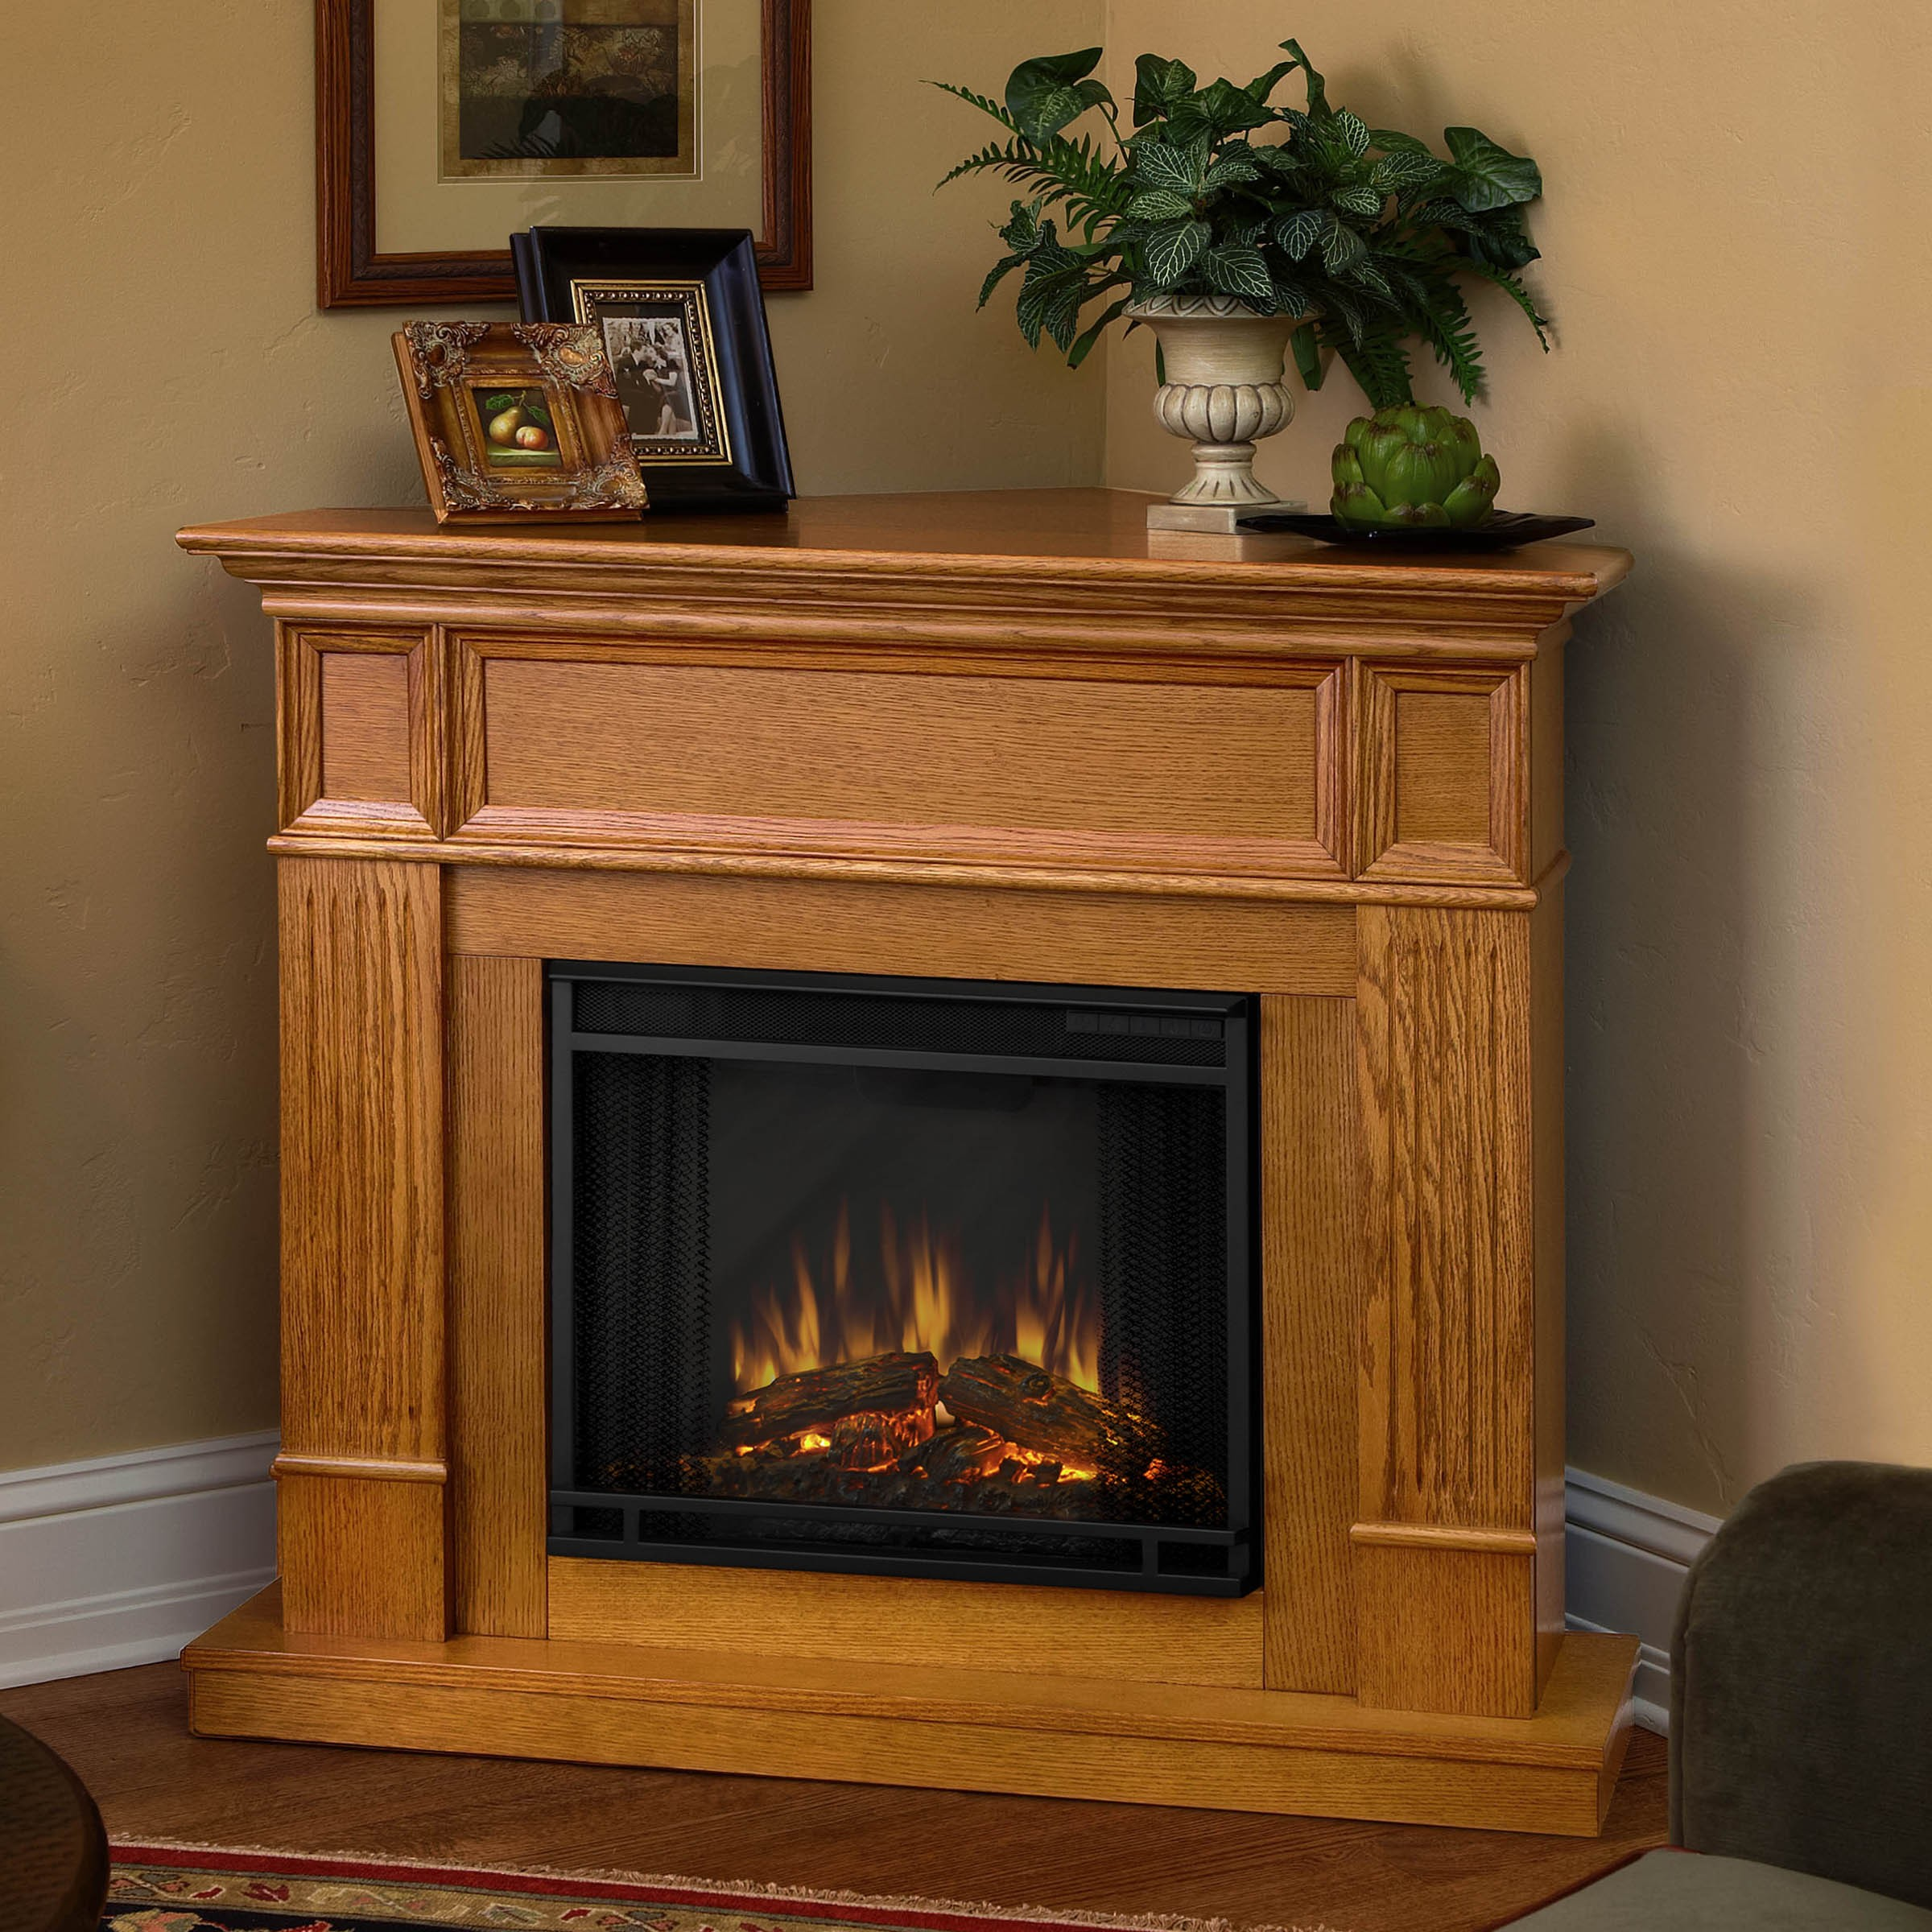 Electric Fireplace Heaters Home Depot: Home Depot Hack Using White Lime Wax